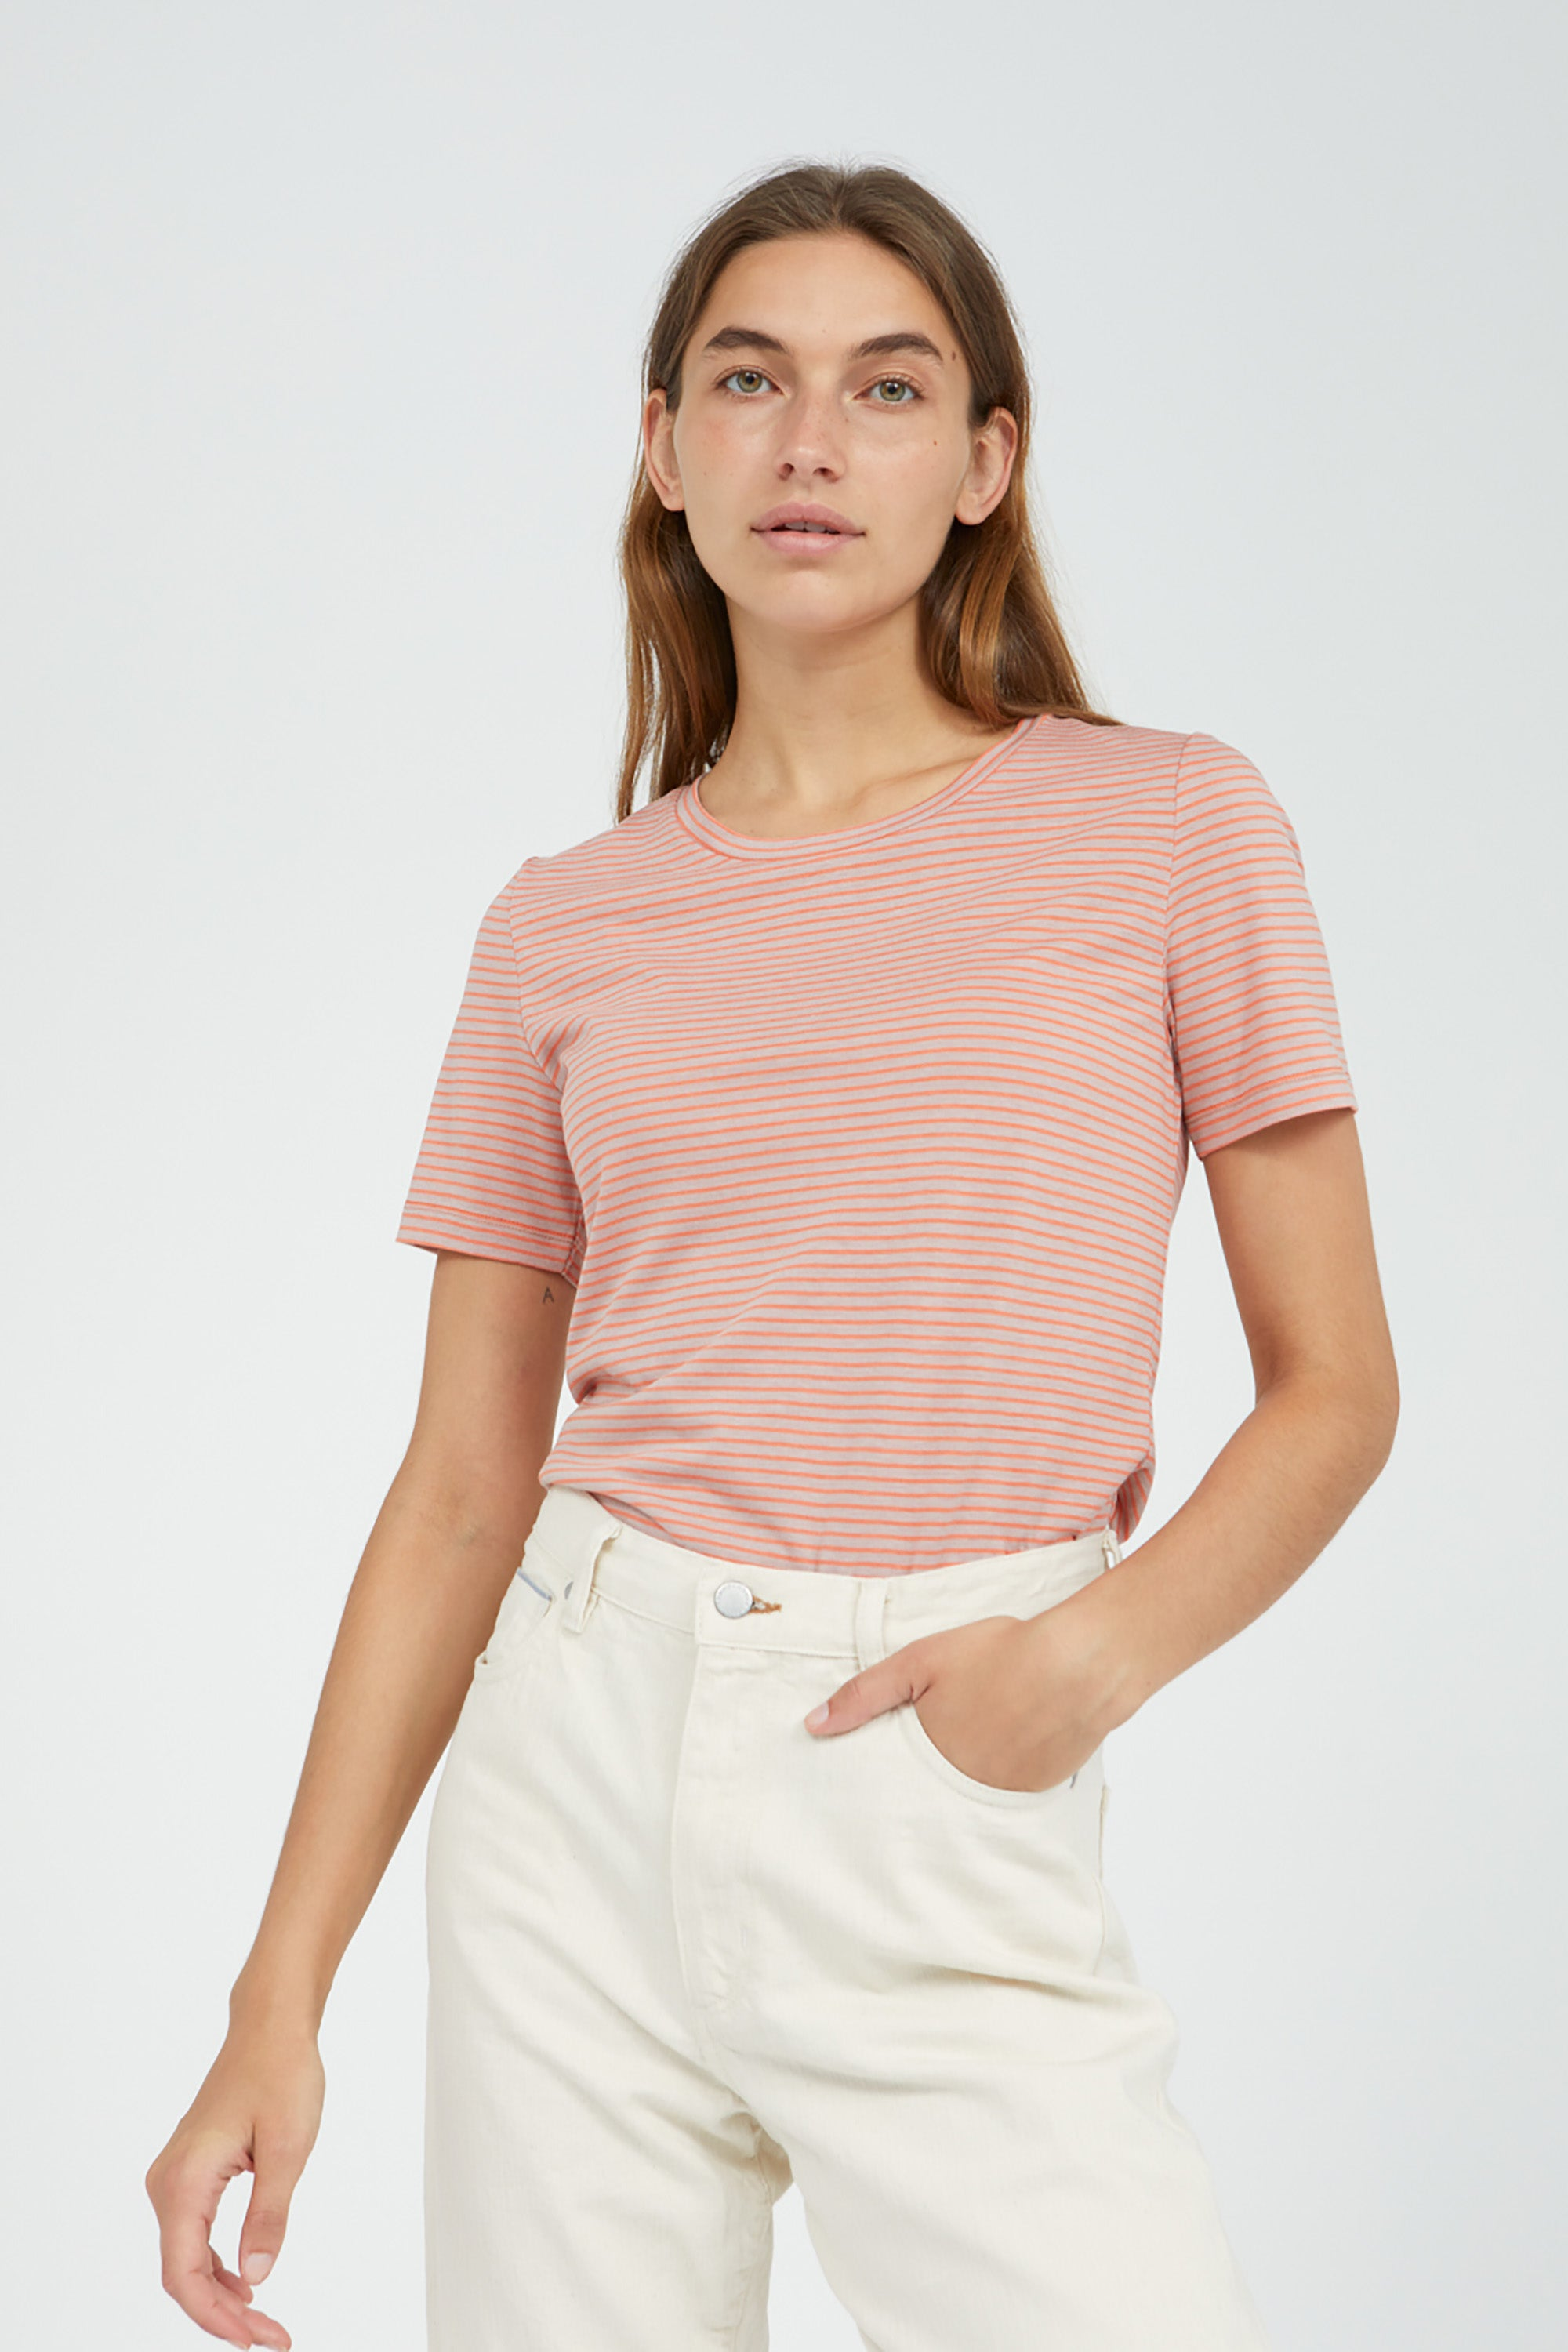 lidiaa small stripes t-shirt sunrise kinoko from thegreenlabels